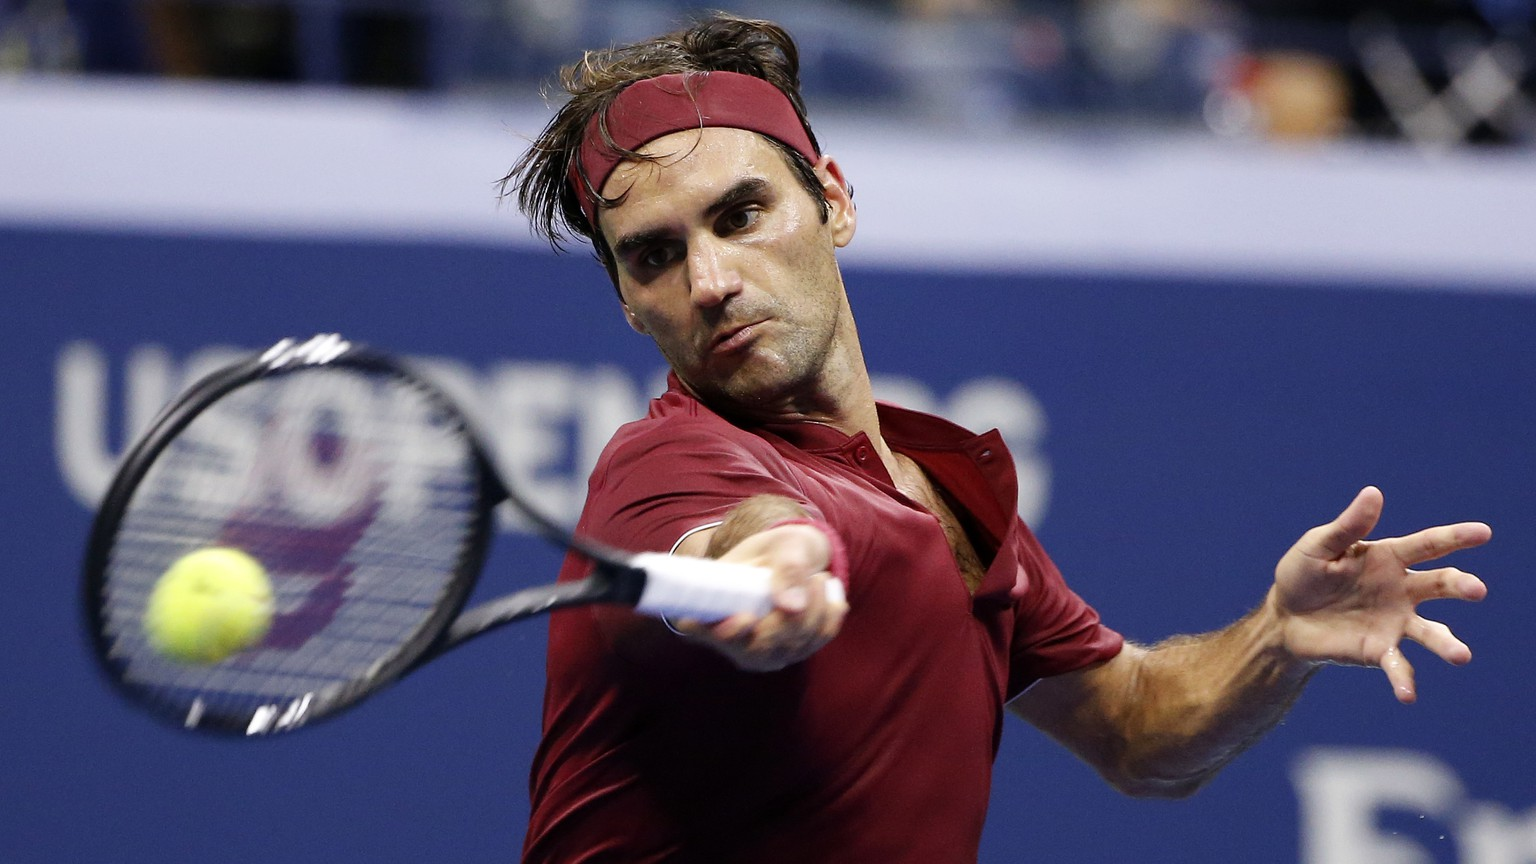 Roger Federer, of Switzerland, returns a shot to John Millman, of Australia, during the fourth round of the U.S. Open tennis tournament early Tuesday, Sept. 4, 2018, in New York. (AP Photo/Jason DeCrow)